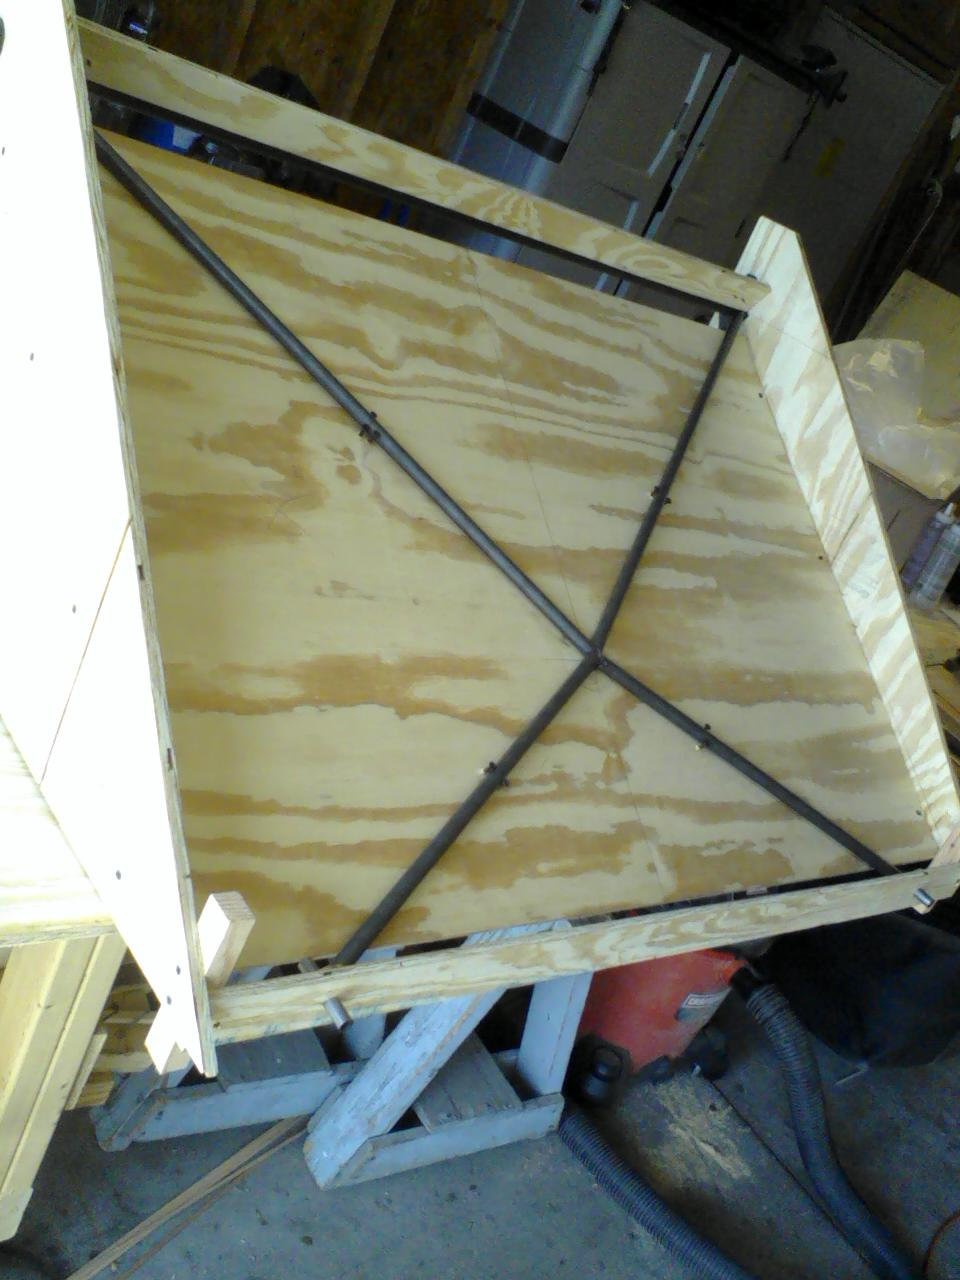 Windshield Frame in Jig